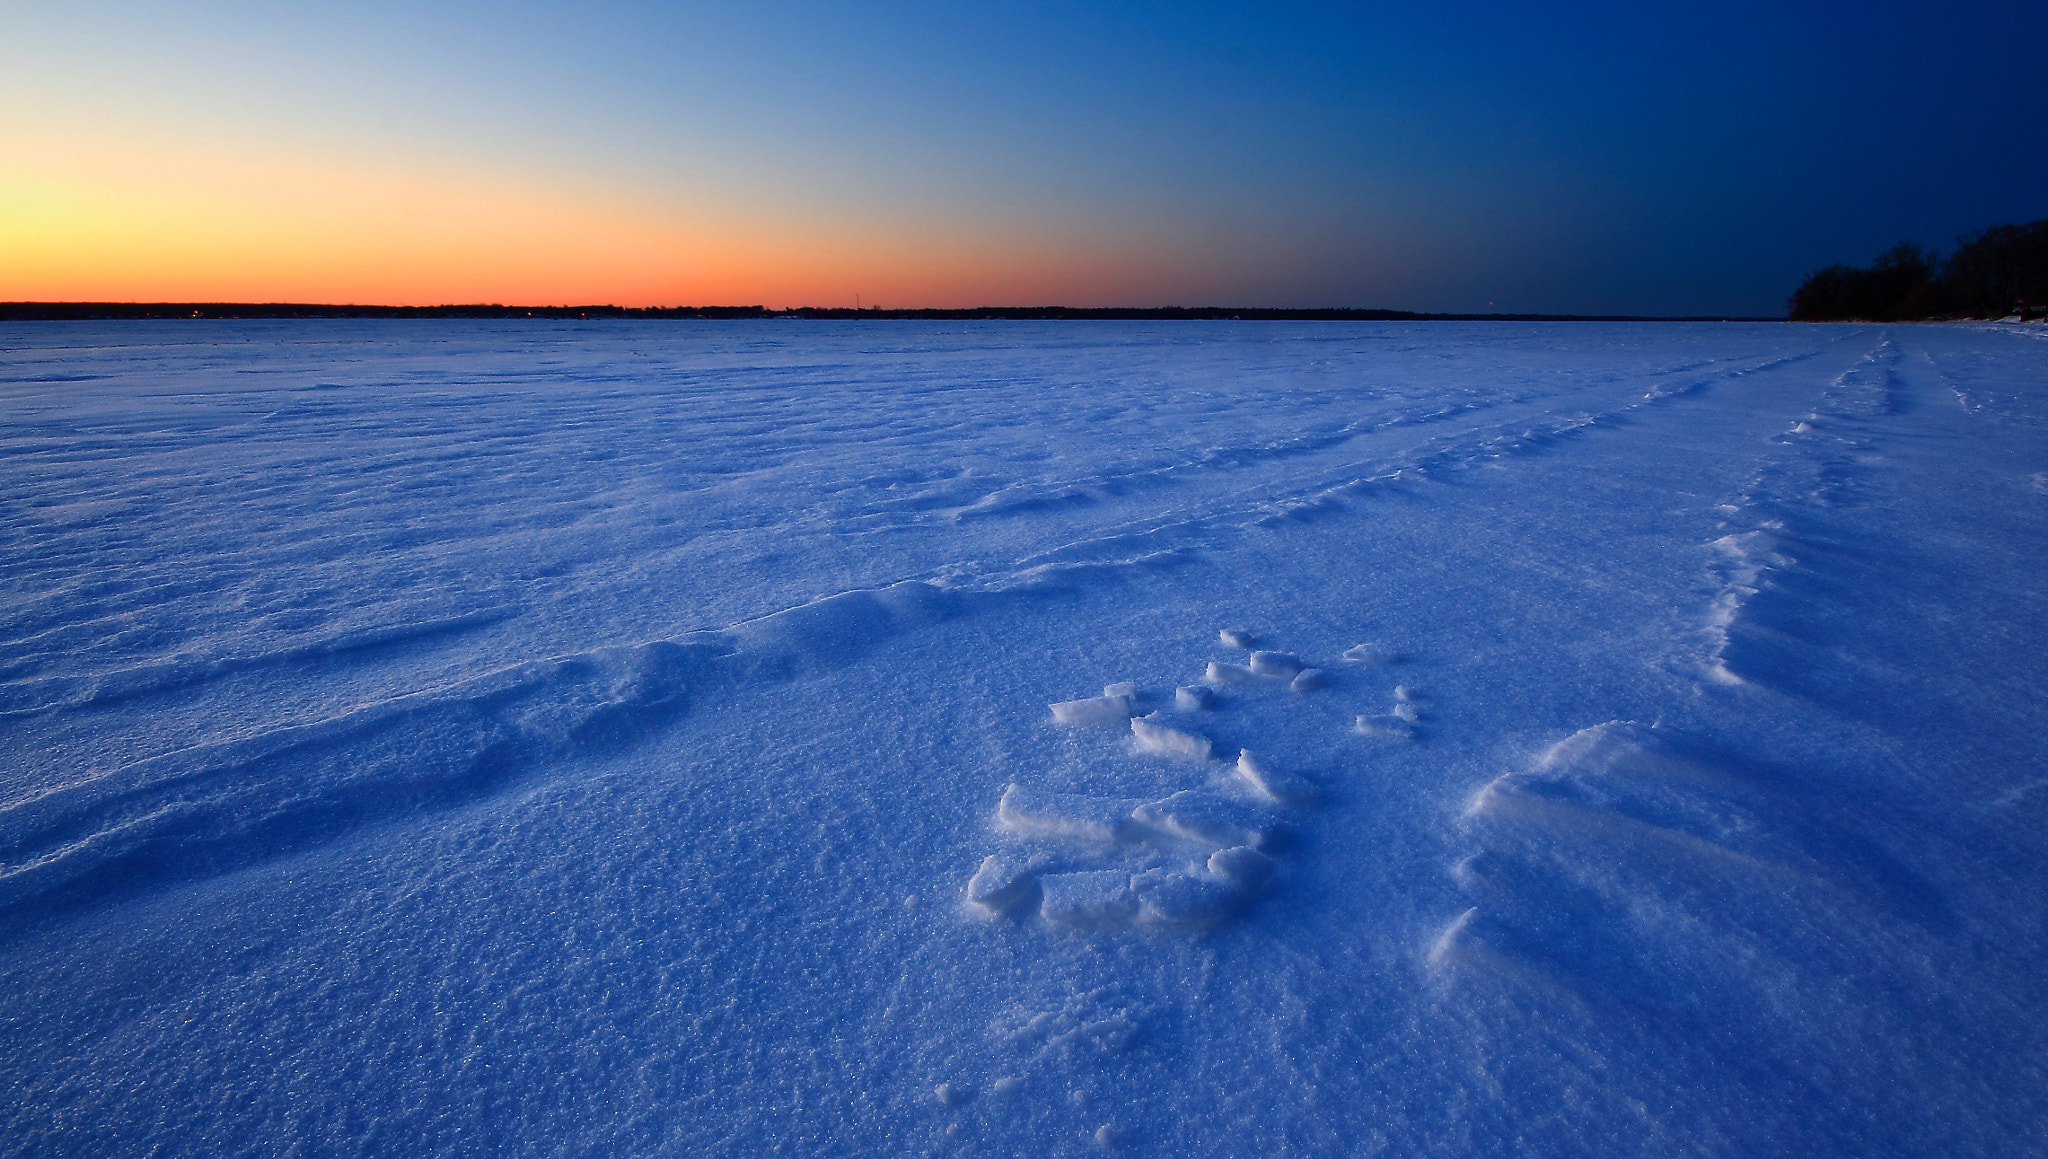 Photograph Frozen Lake at Sunset by Andy Barrow (SnapHappyExpat) on 500px